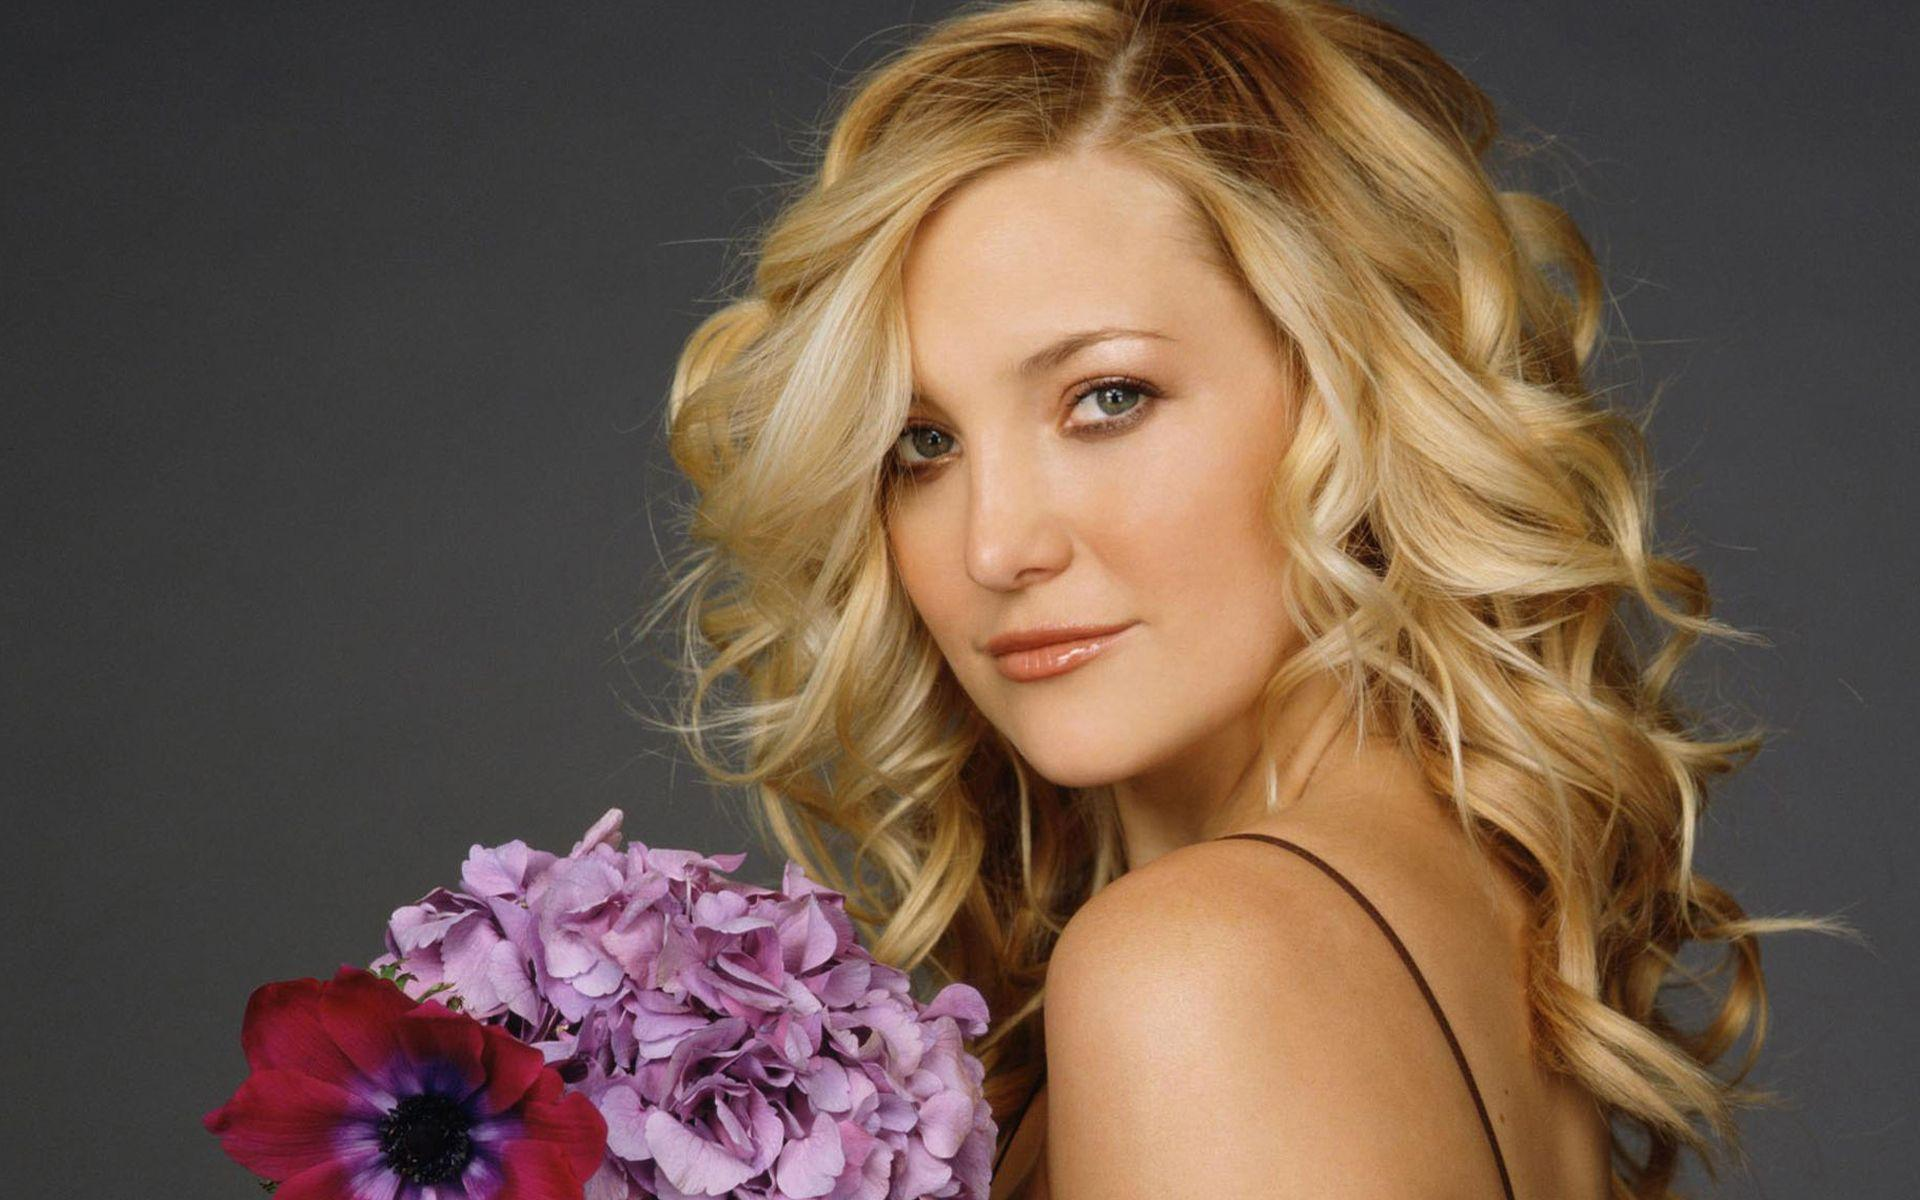 Kate Hudson Wallpapers, Pictures, Image